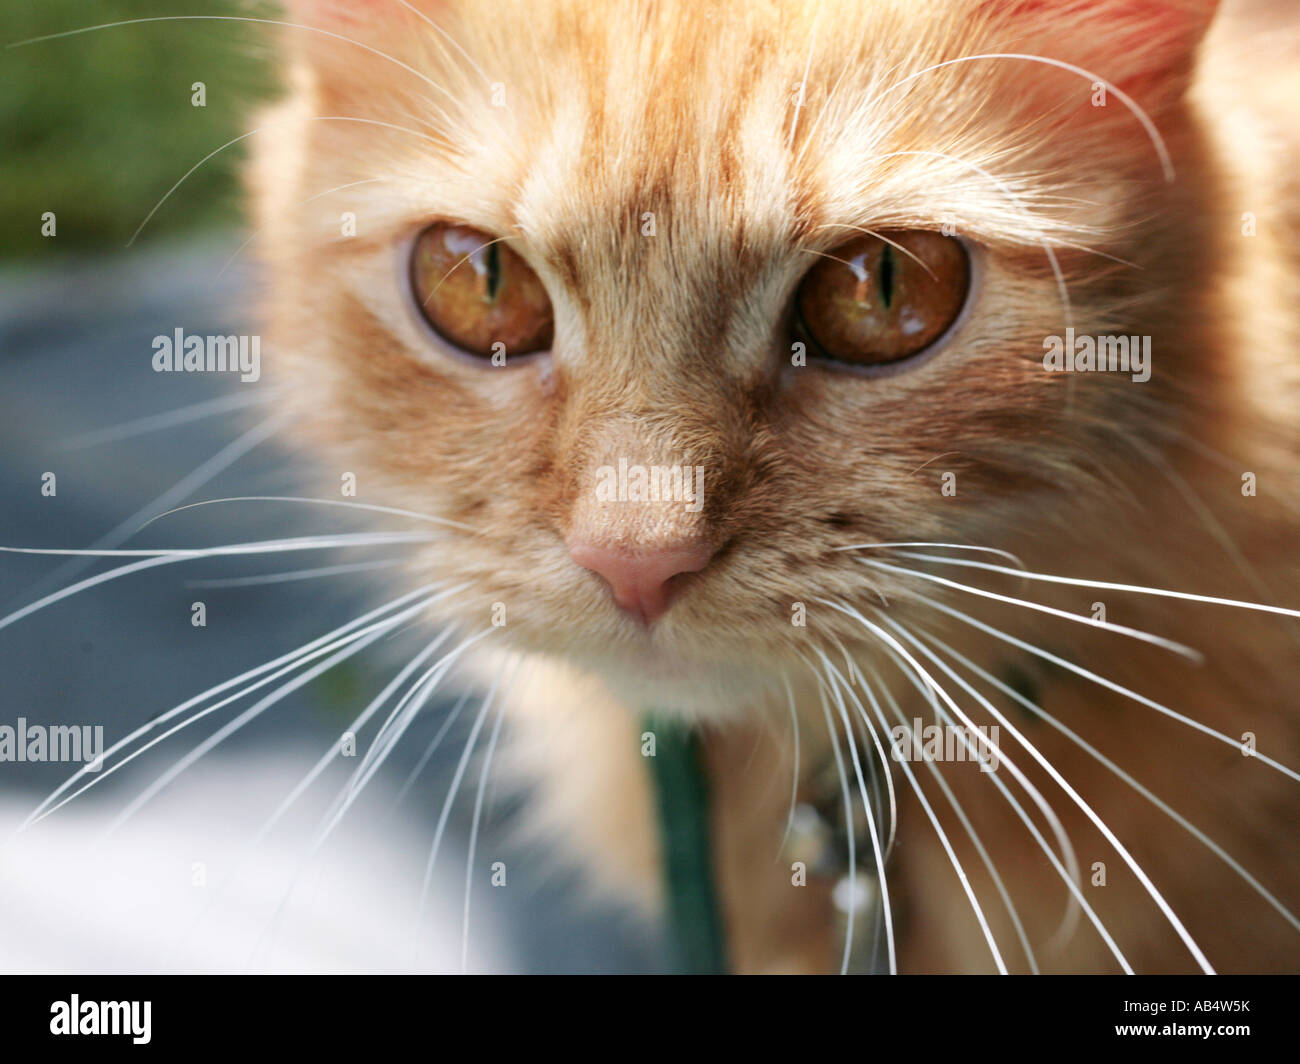 A close-up of the face of a ginger cat. Stock Photo